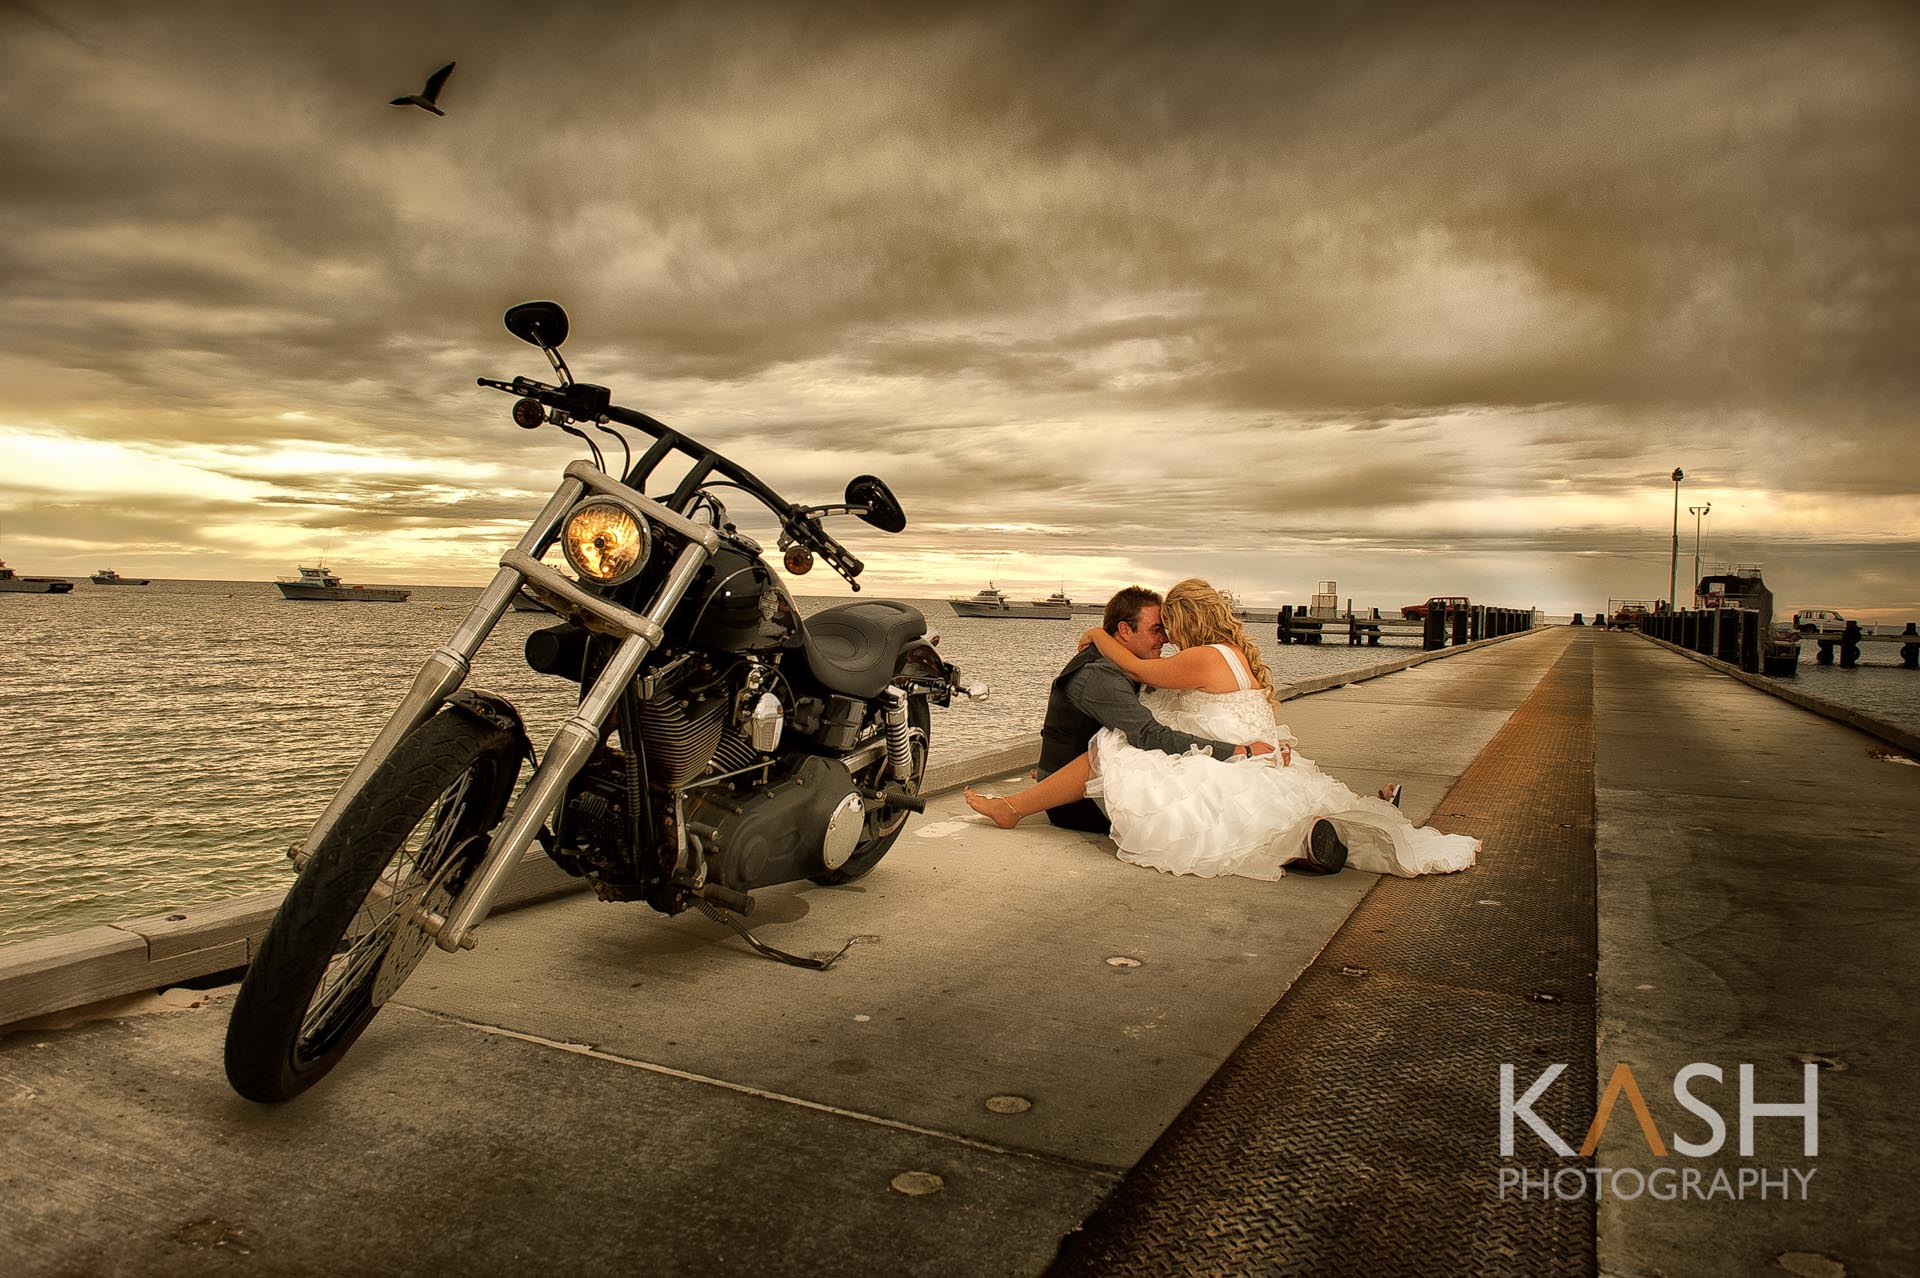 KASH PHOTOGRAPHY 1608